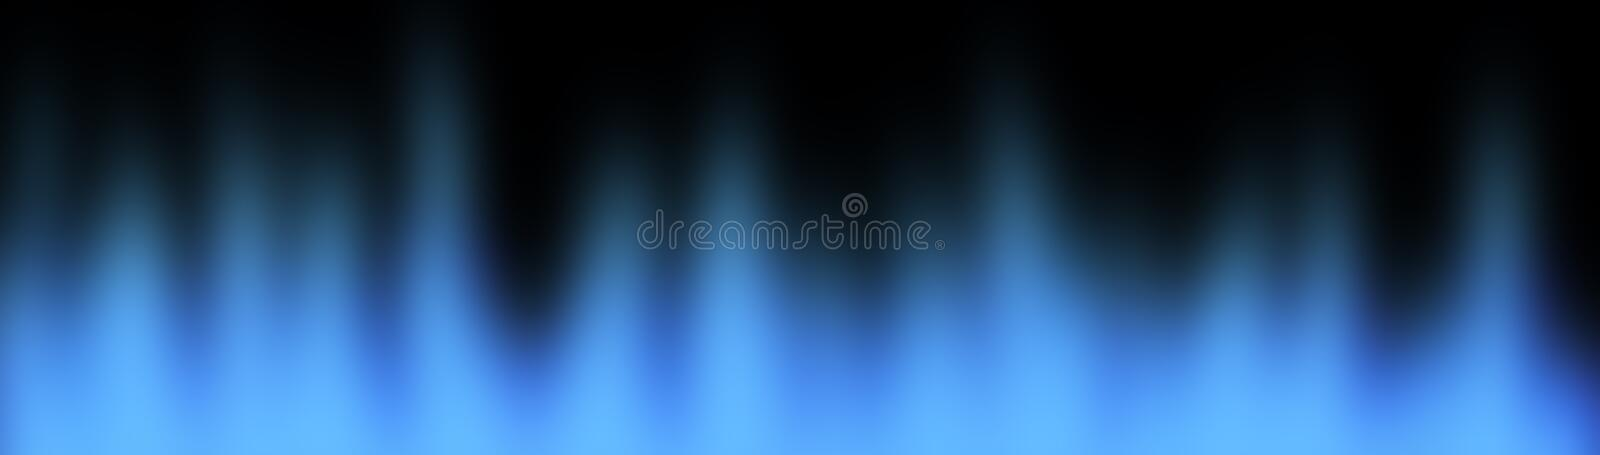 Abstract Web Header / Banner Royalty Free Stock Photo